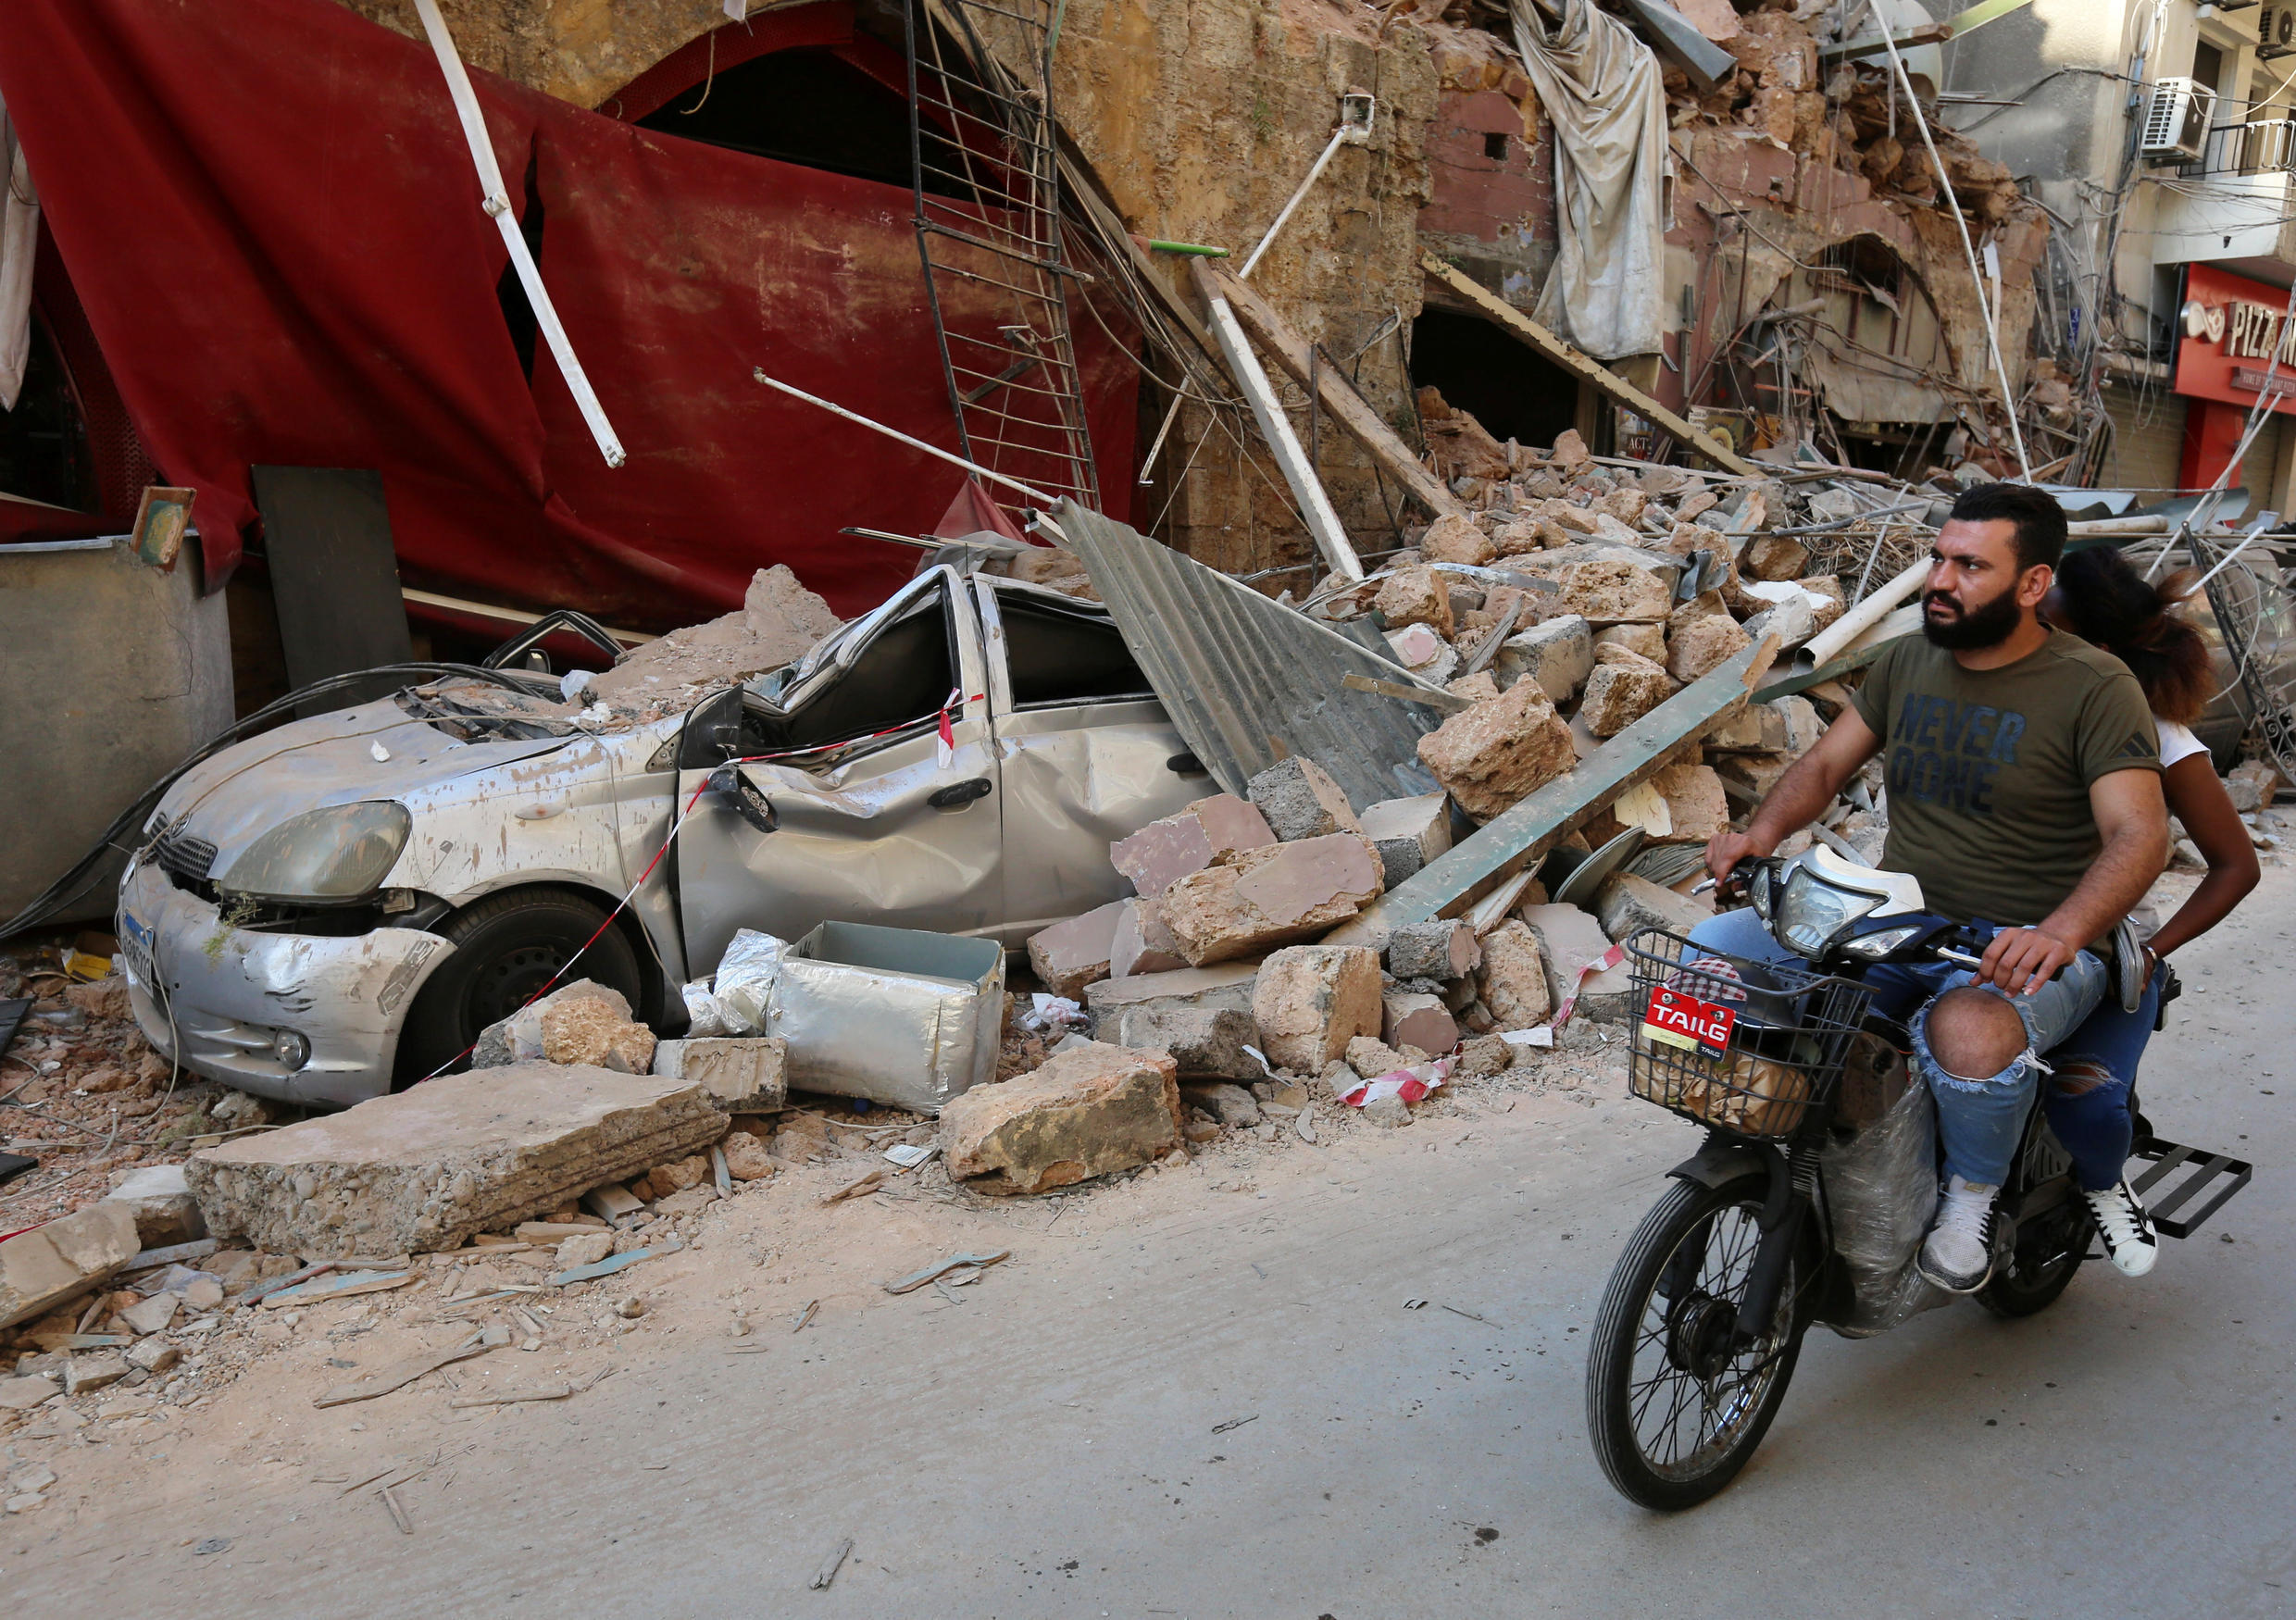 A man rides on a motorbike near rubble from damaged buildings following Tuesday's blast.